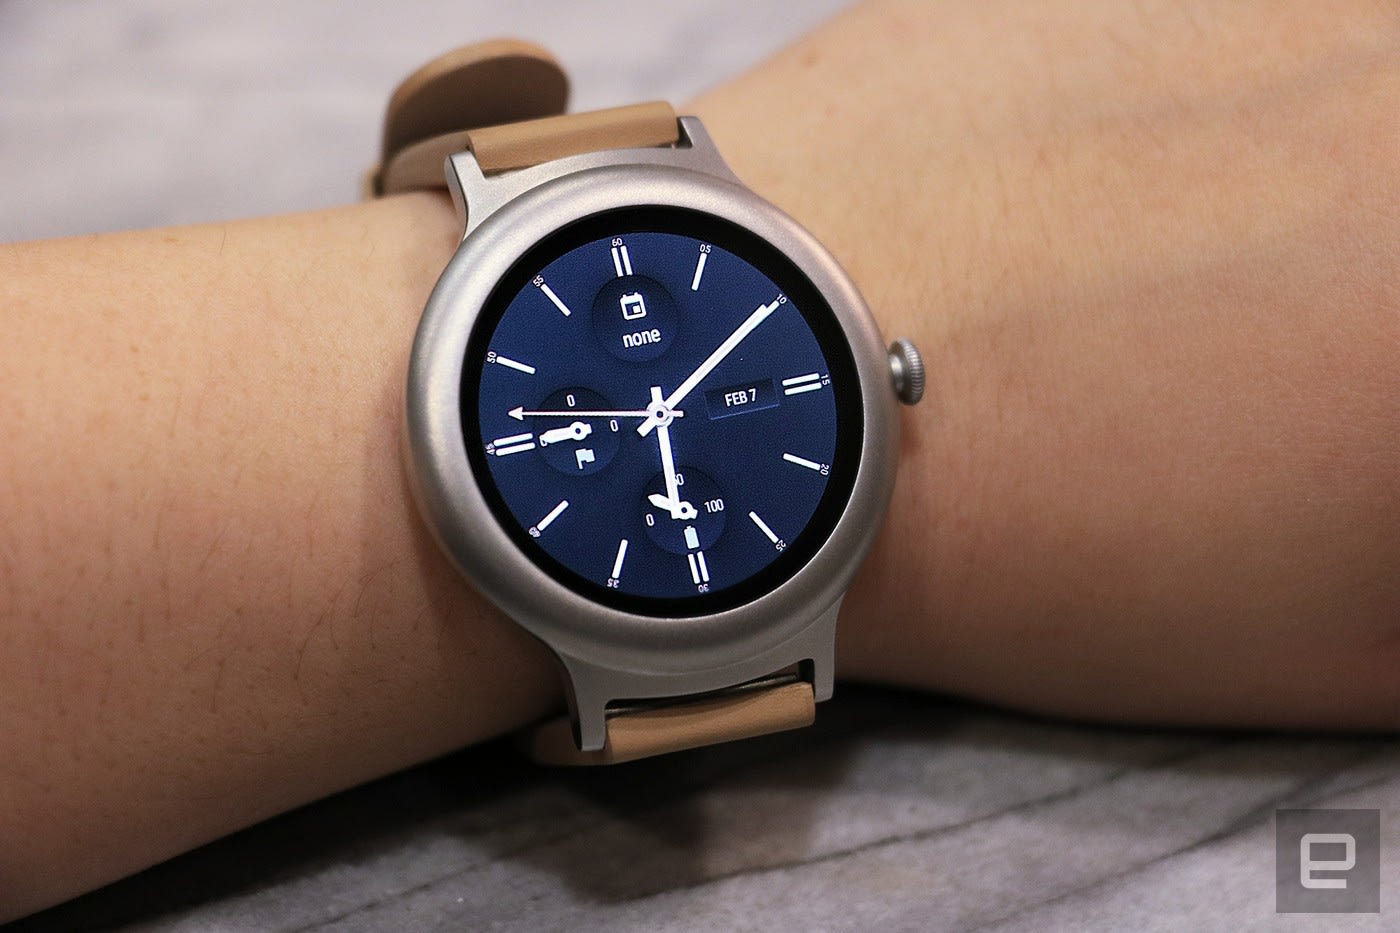 931133e1ab4 Cherlynn Low Engadget. Ever since Google rebranded Android Wear ...